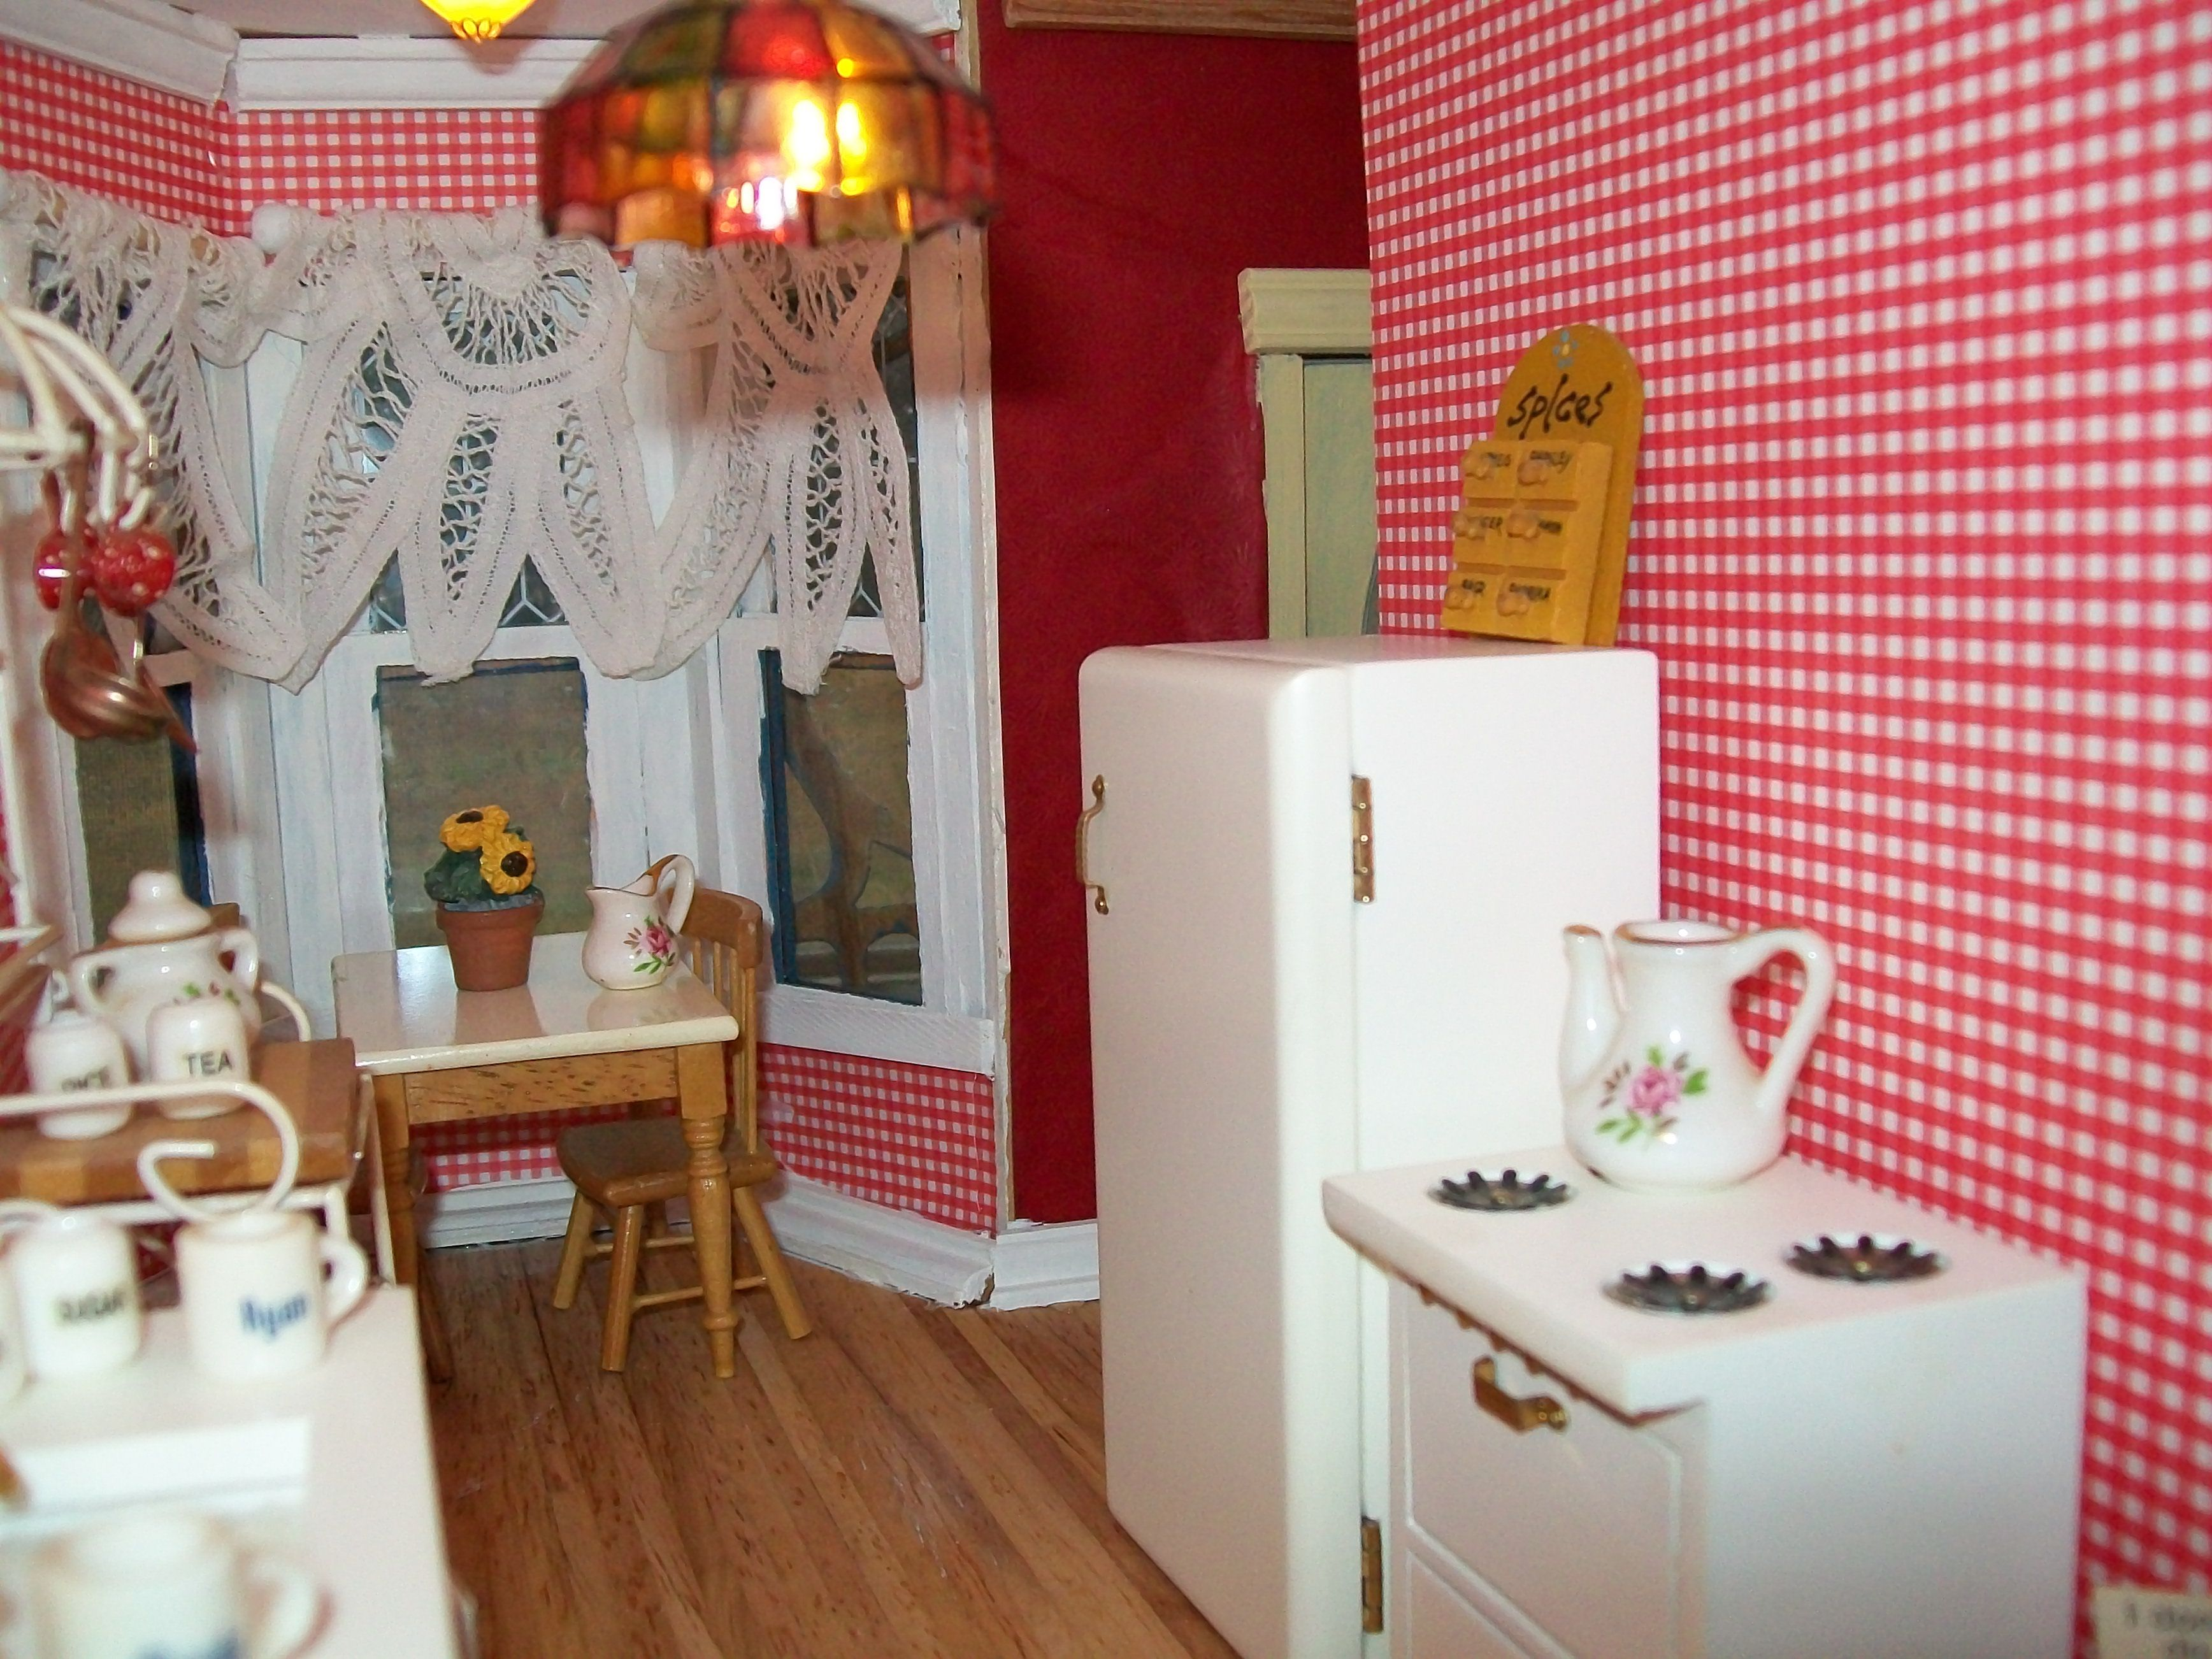 Scrapbook paper dollhouse wallpaper - Decorated Rooms In The Dollhouse I Used Leftover Lace To Make The Curtains And